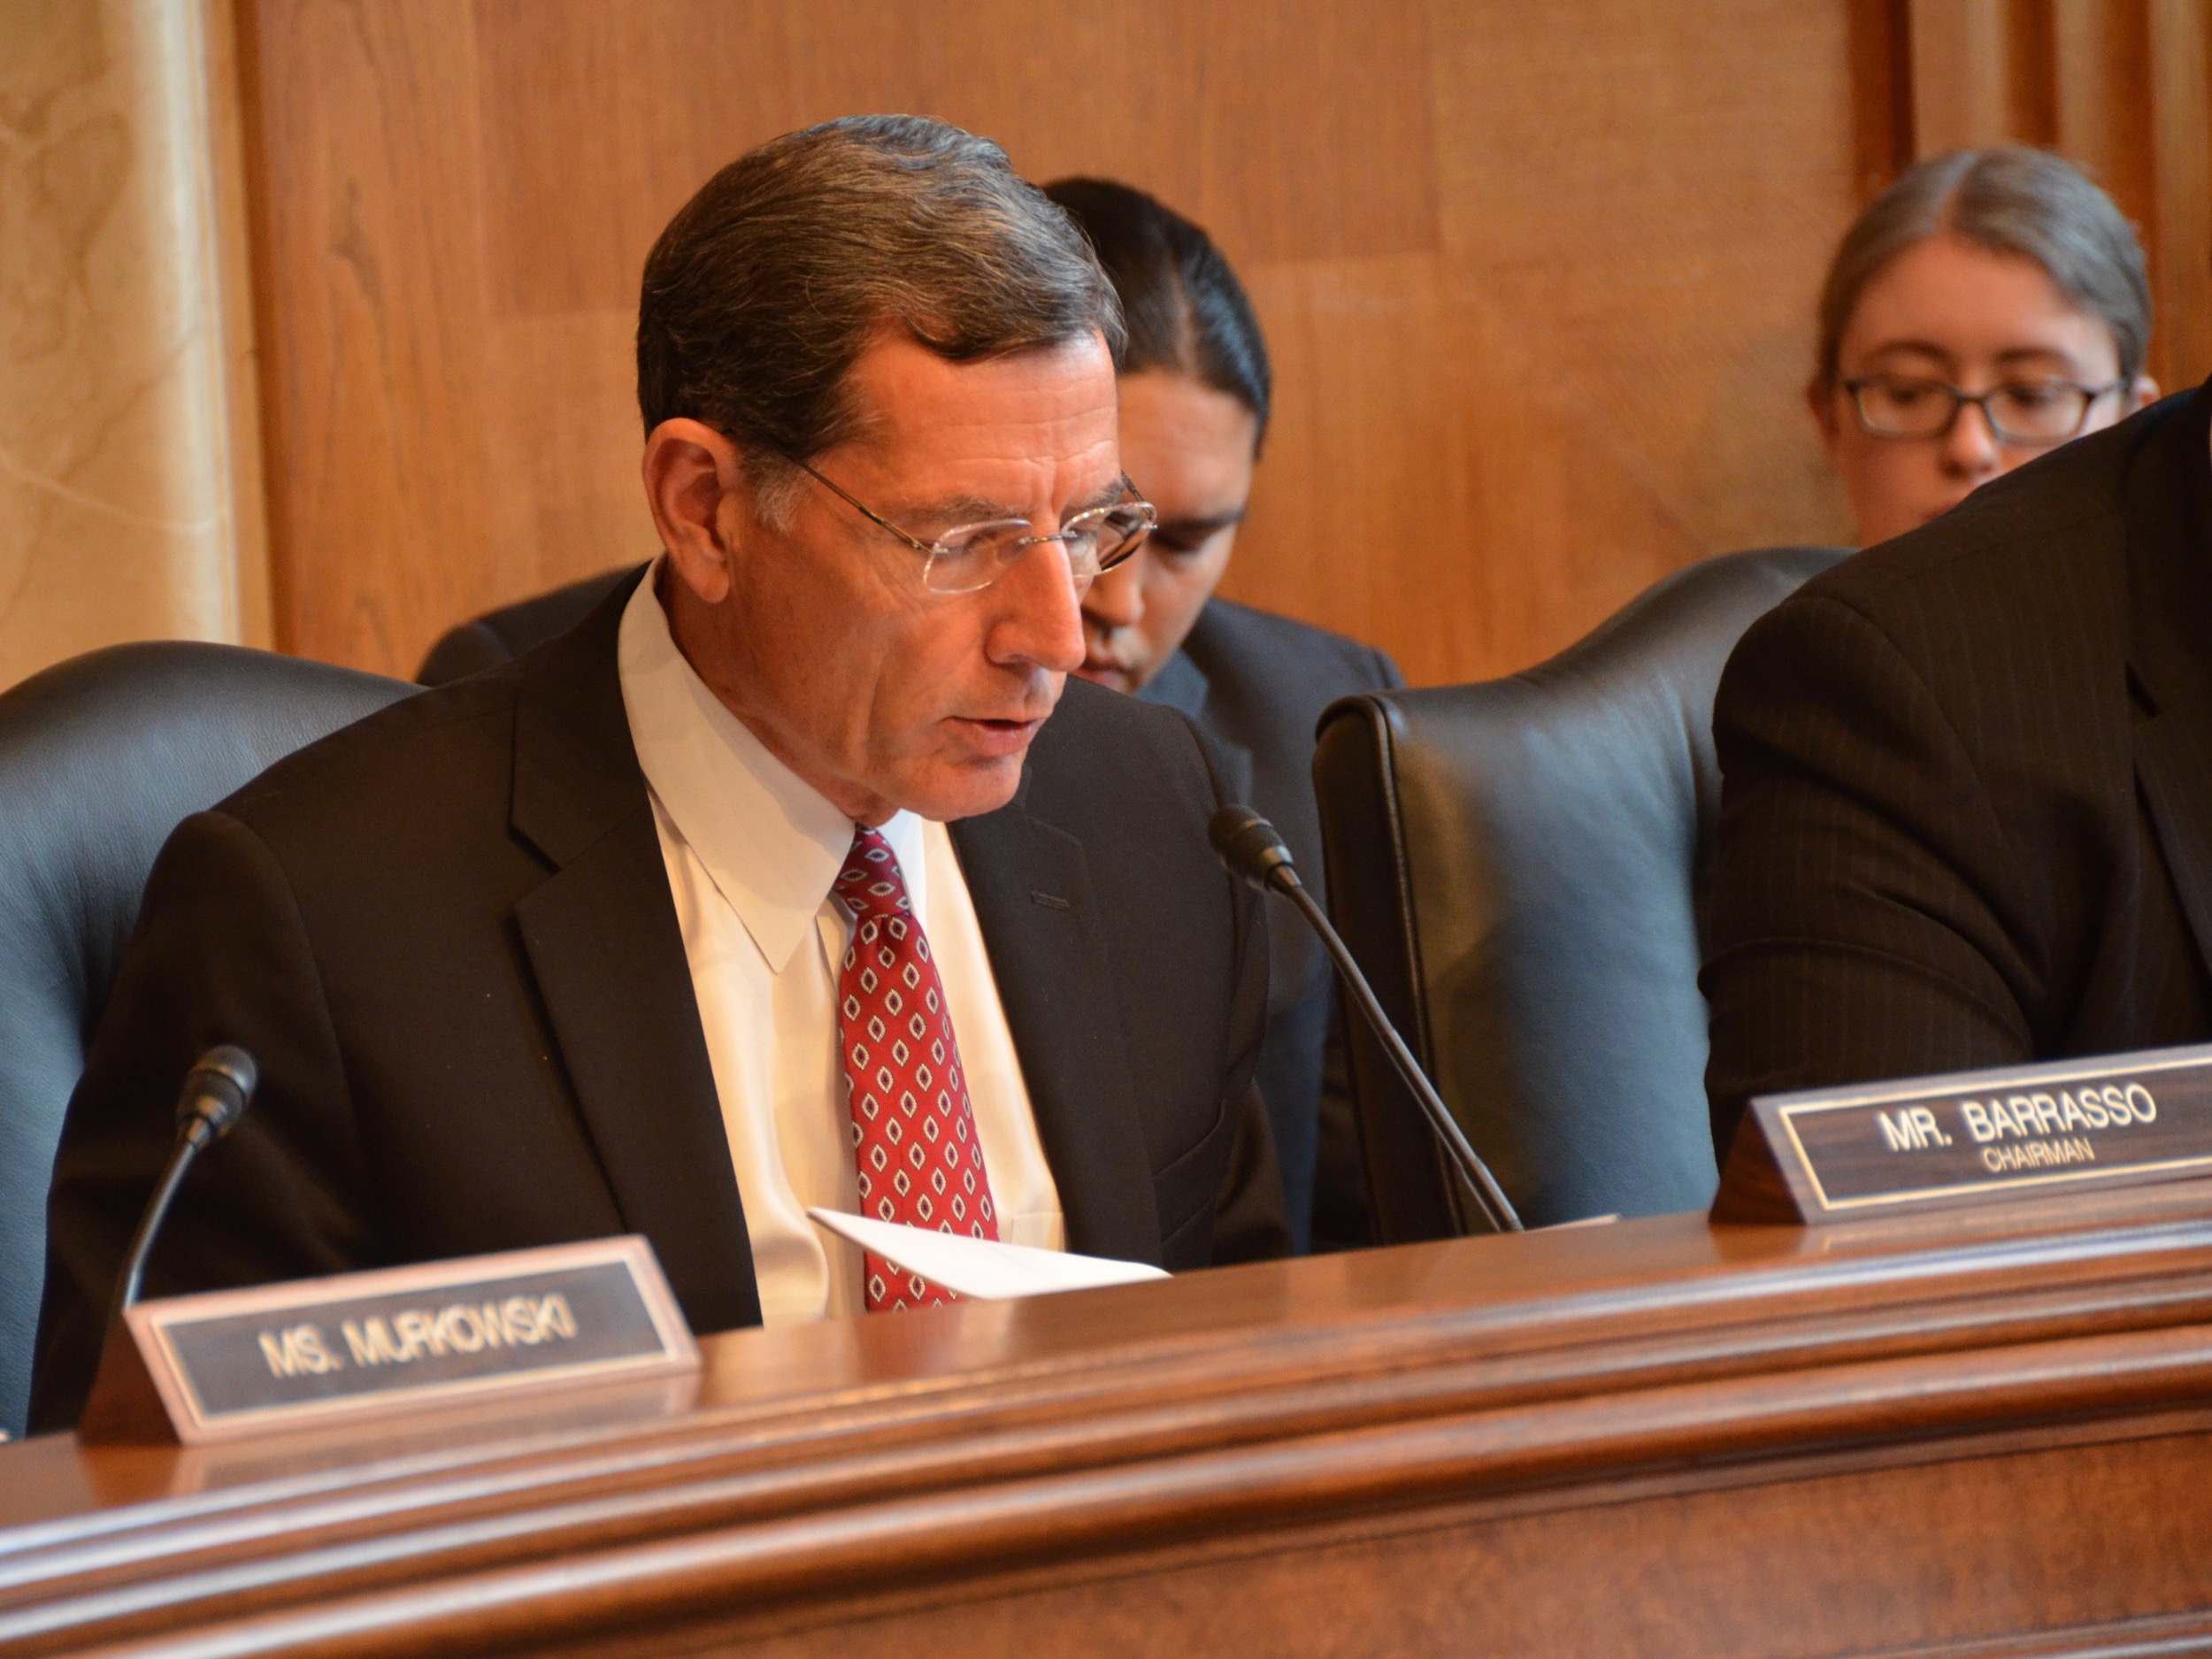 Sen. John Barrasso passing on gavel at Senate Committee on Indian Affairs